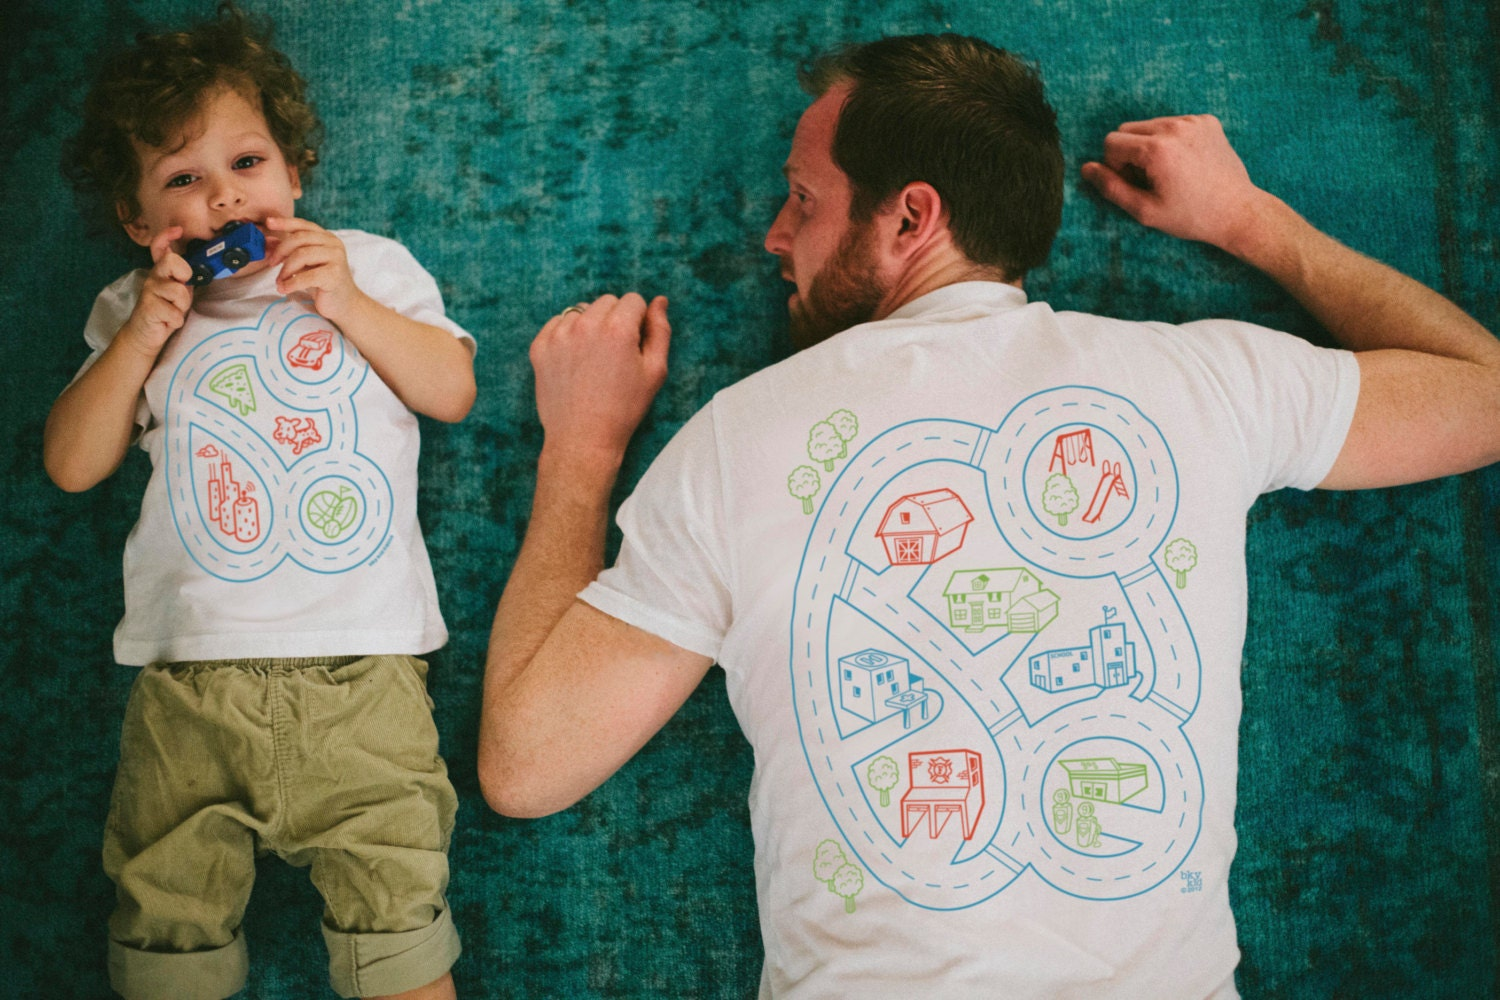 Dad and son matching shirts, Dad baby matching shirts, father son matching shirts, Best DAD Best SON, vater sohn tshirts, vater und sohn sugararmy out of 5 stars () $ Bestseller Favorite Add to See similar items + More like this.